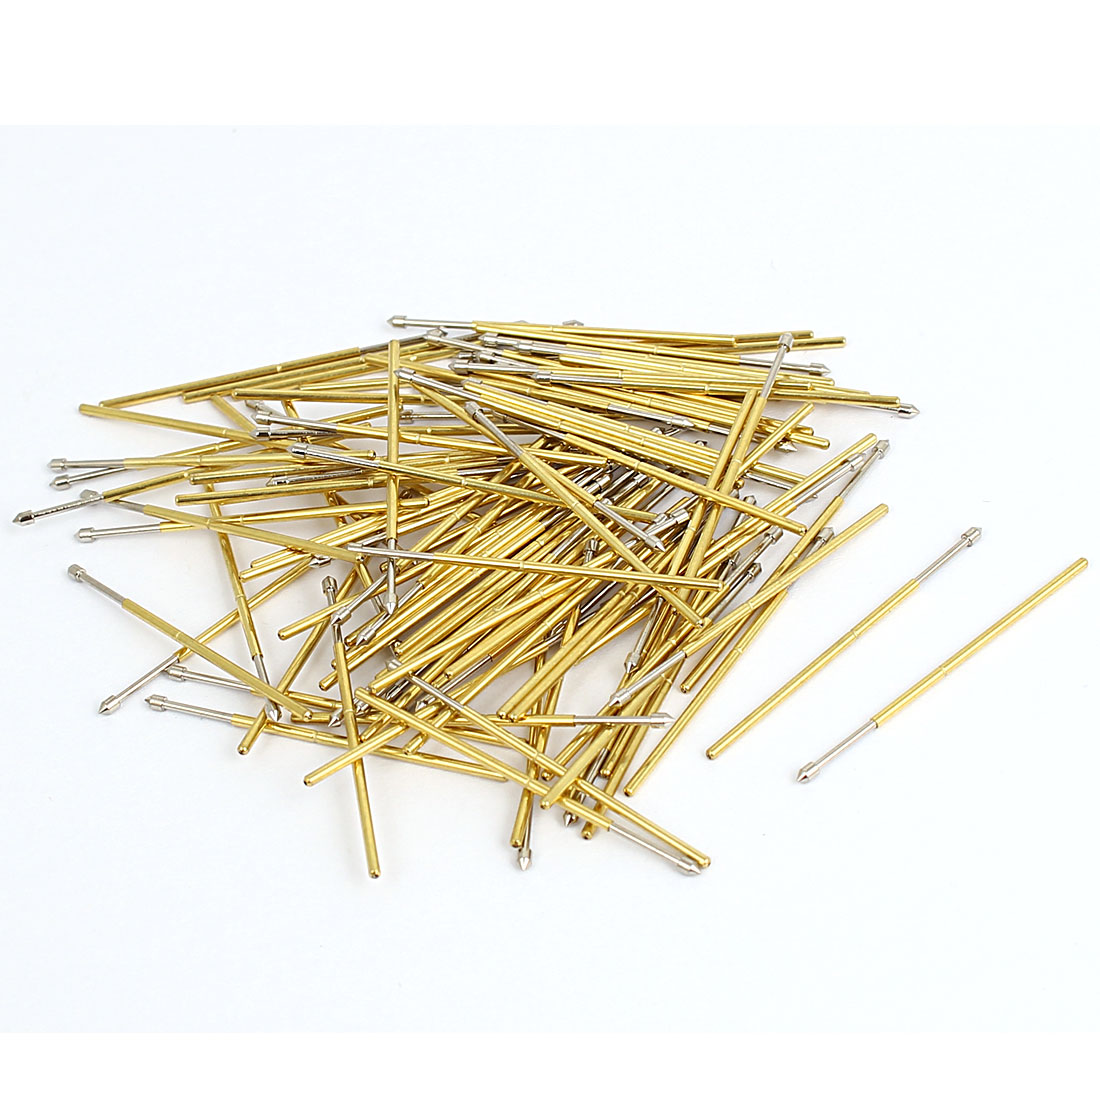 PC75E 33mm Length 90 Degree Convex Tip Spring Loaded Test Probe Pin 100Pcs